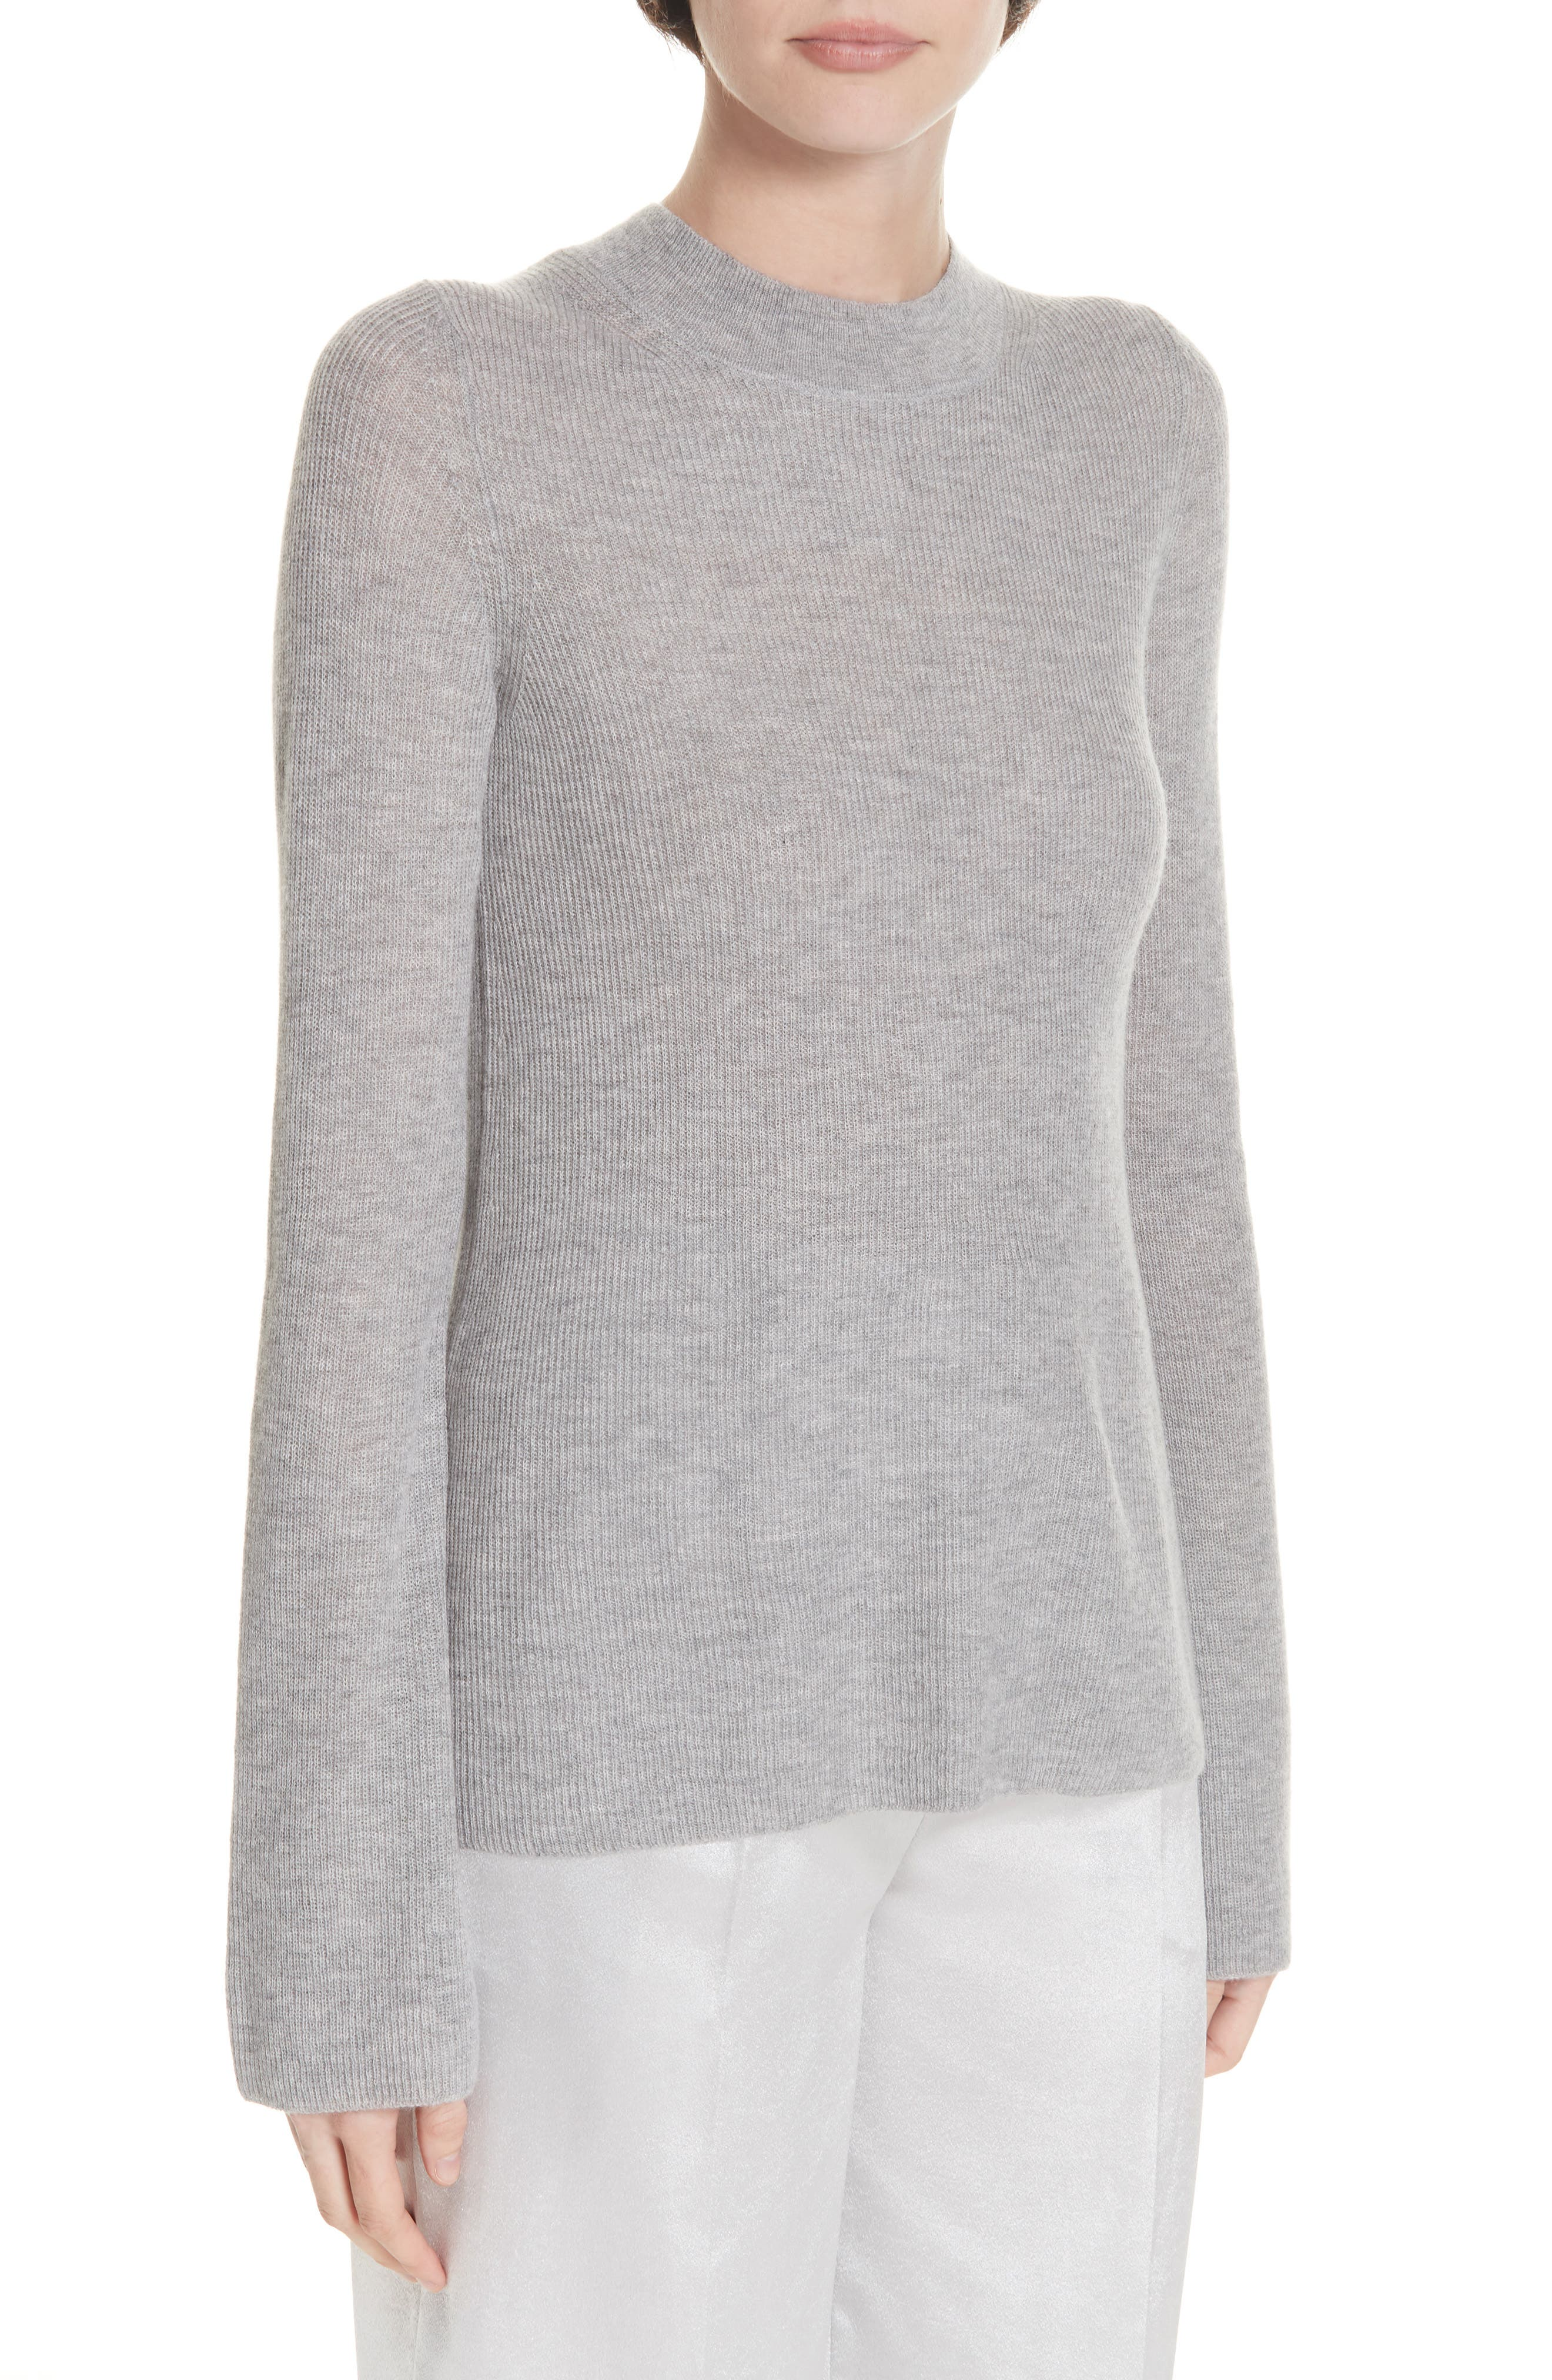 Ribbed Cashmere Sweater,                             Alternate thumbnail 4, color,                             060